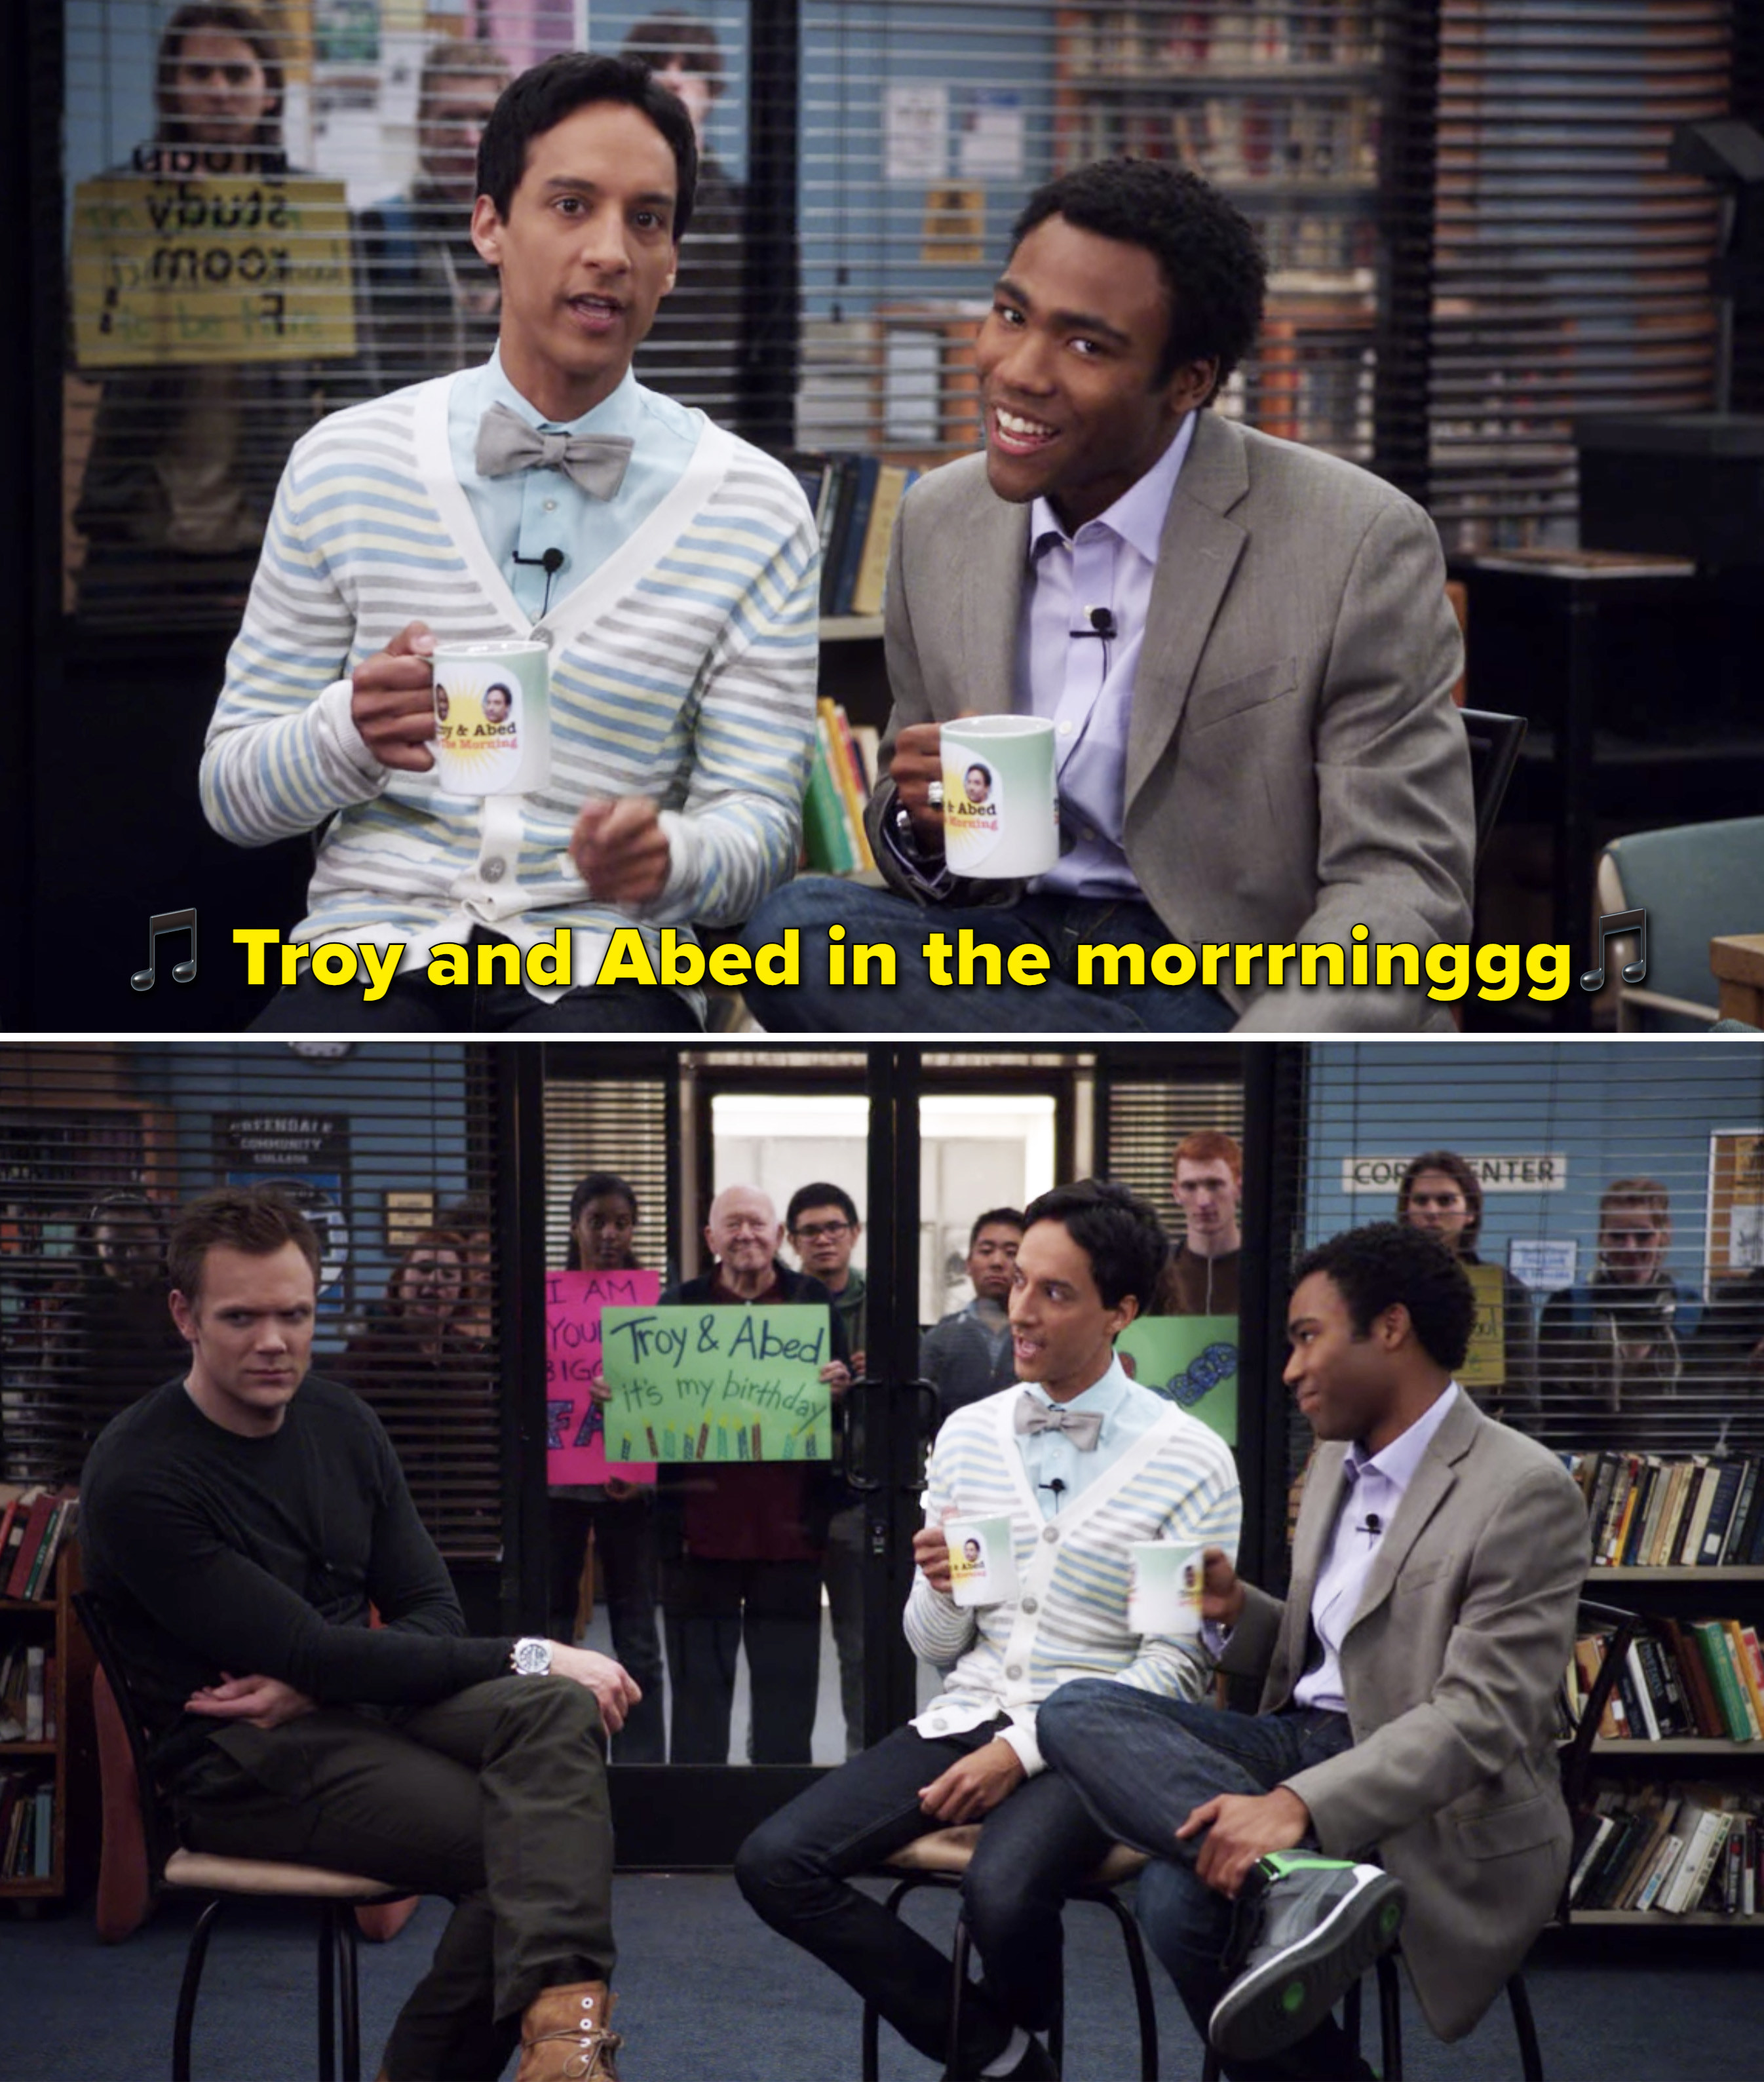 """Troy and Abed singing, """"Troy and Abed in the morning"""""""